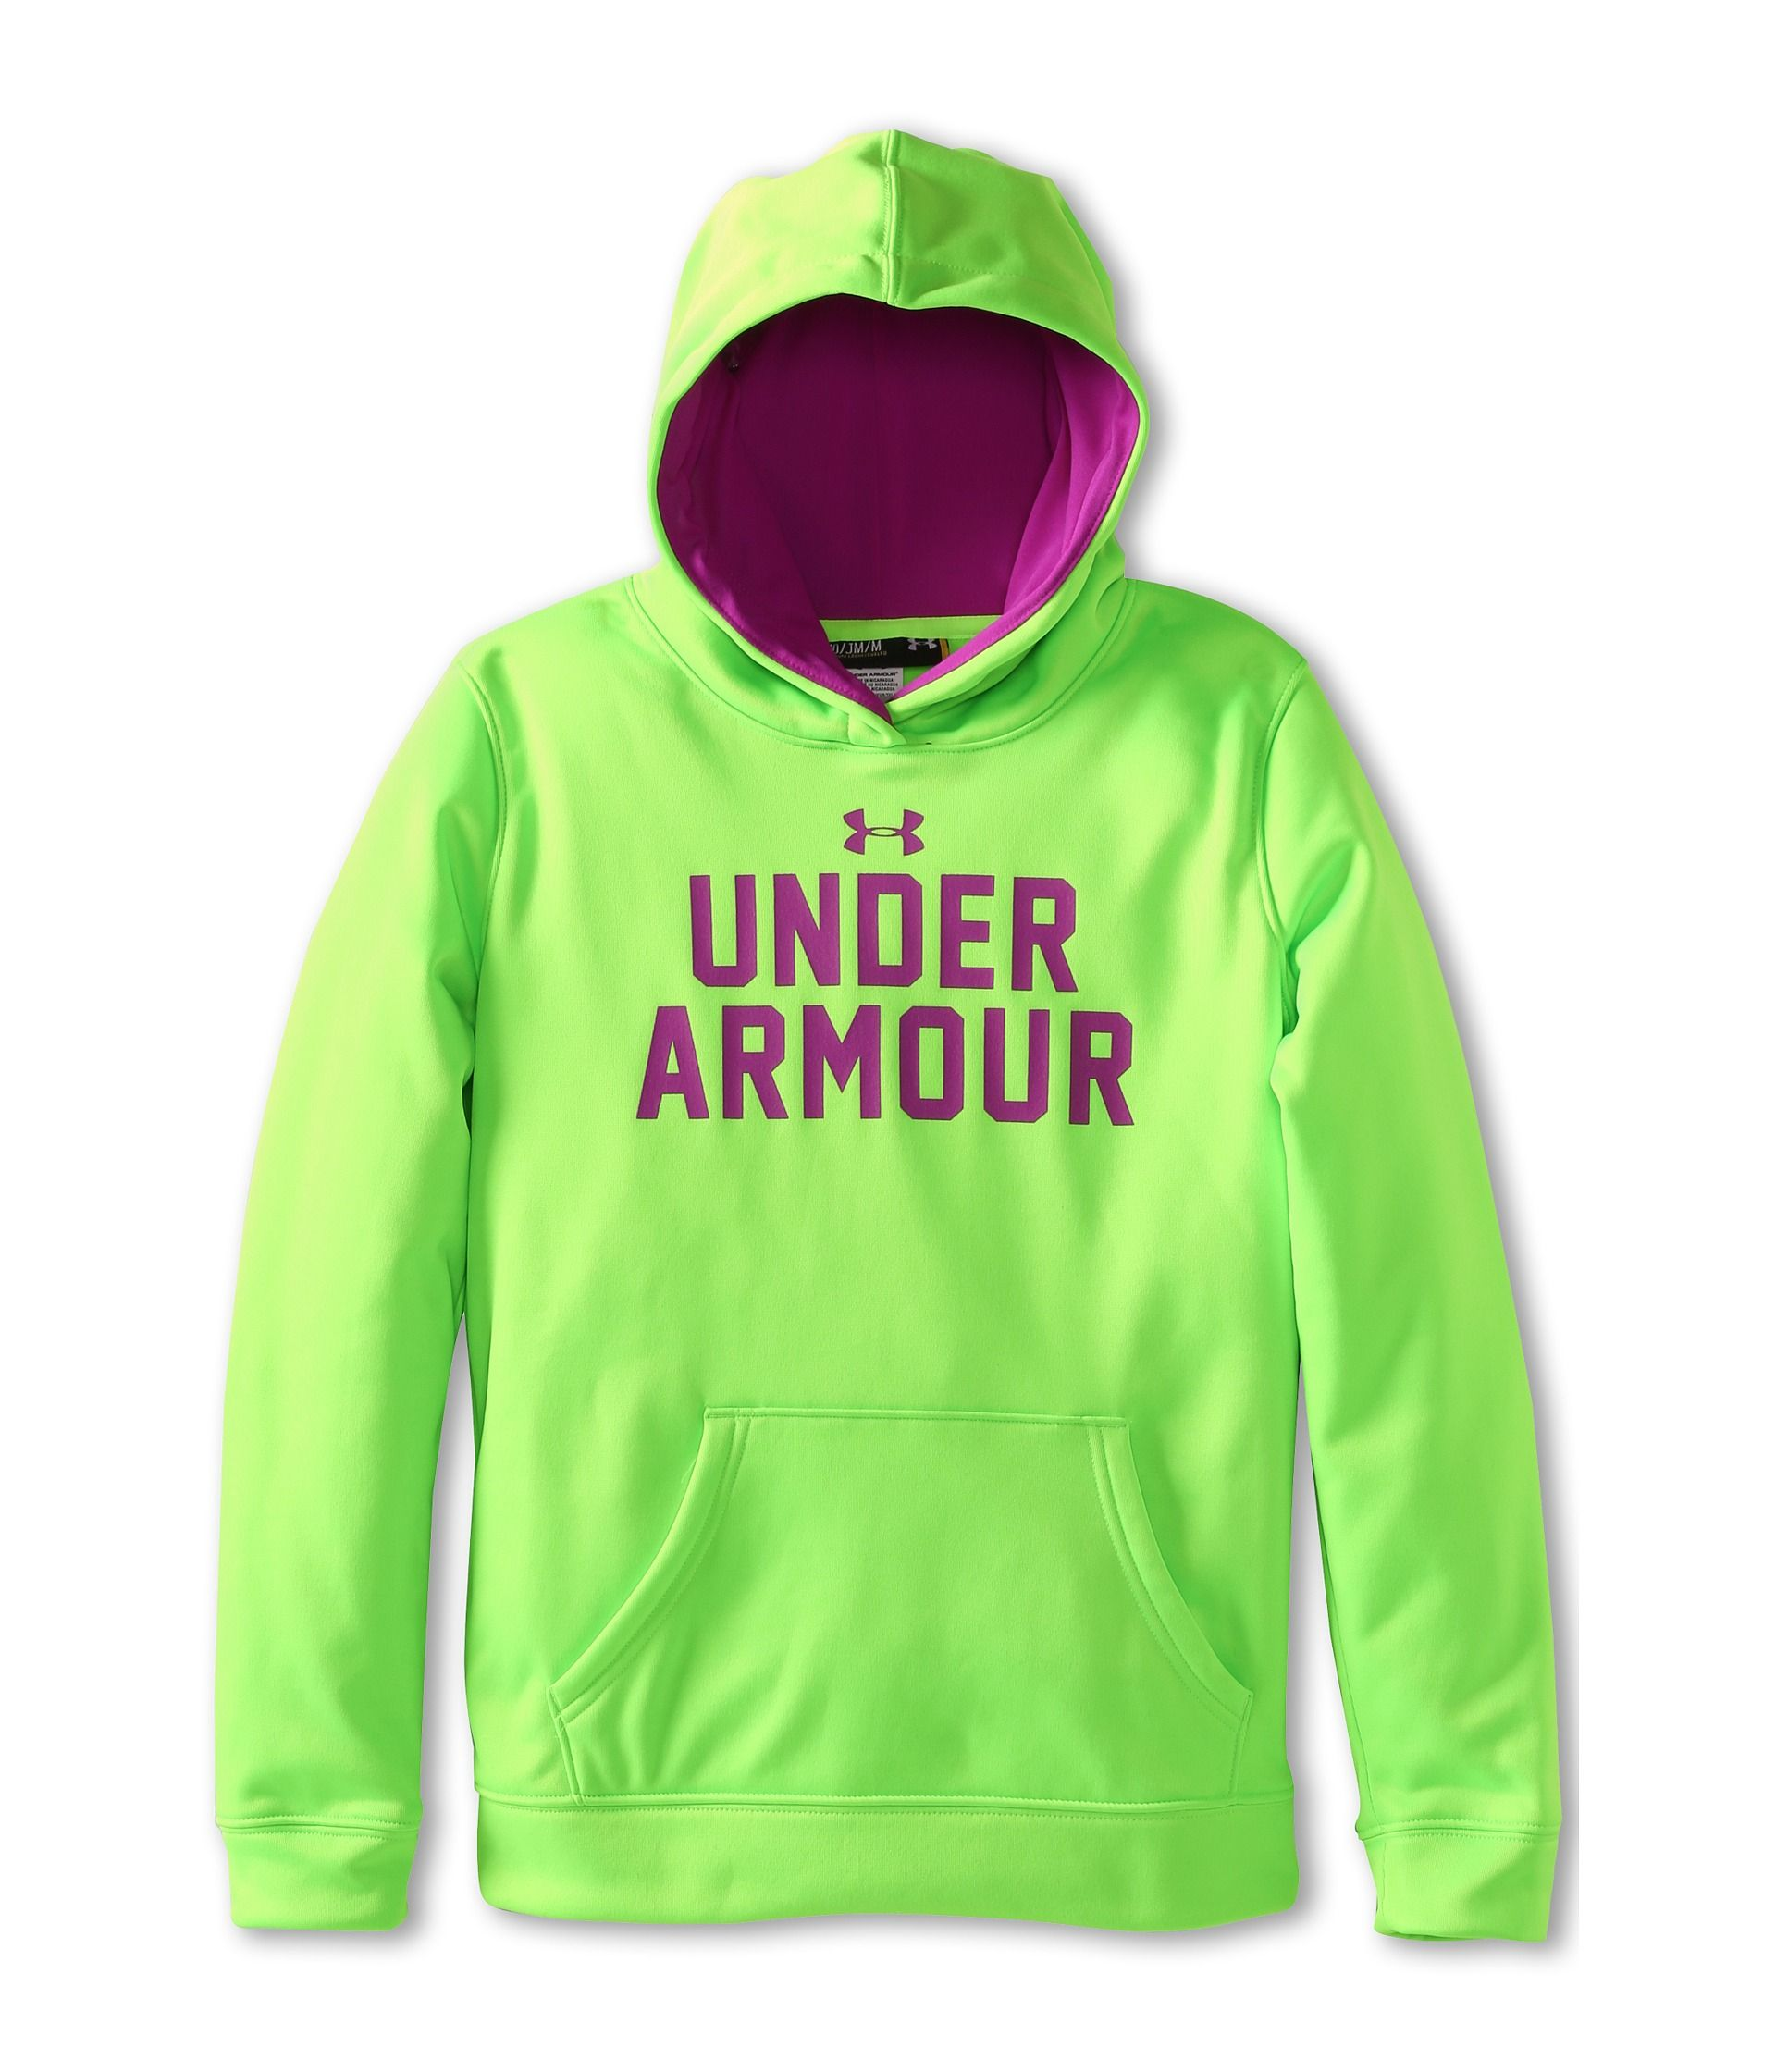 under armour jackets for girls Google Search UnderUnder Armour Sweatshirts For Girls